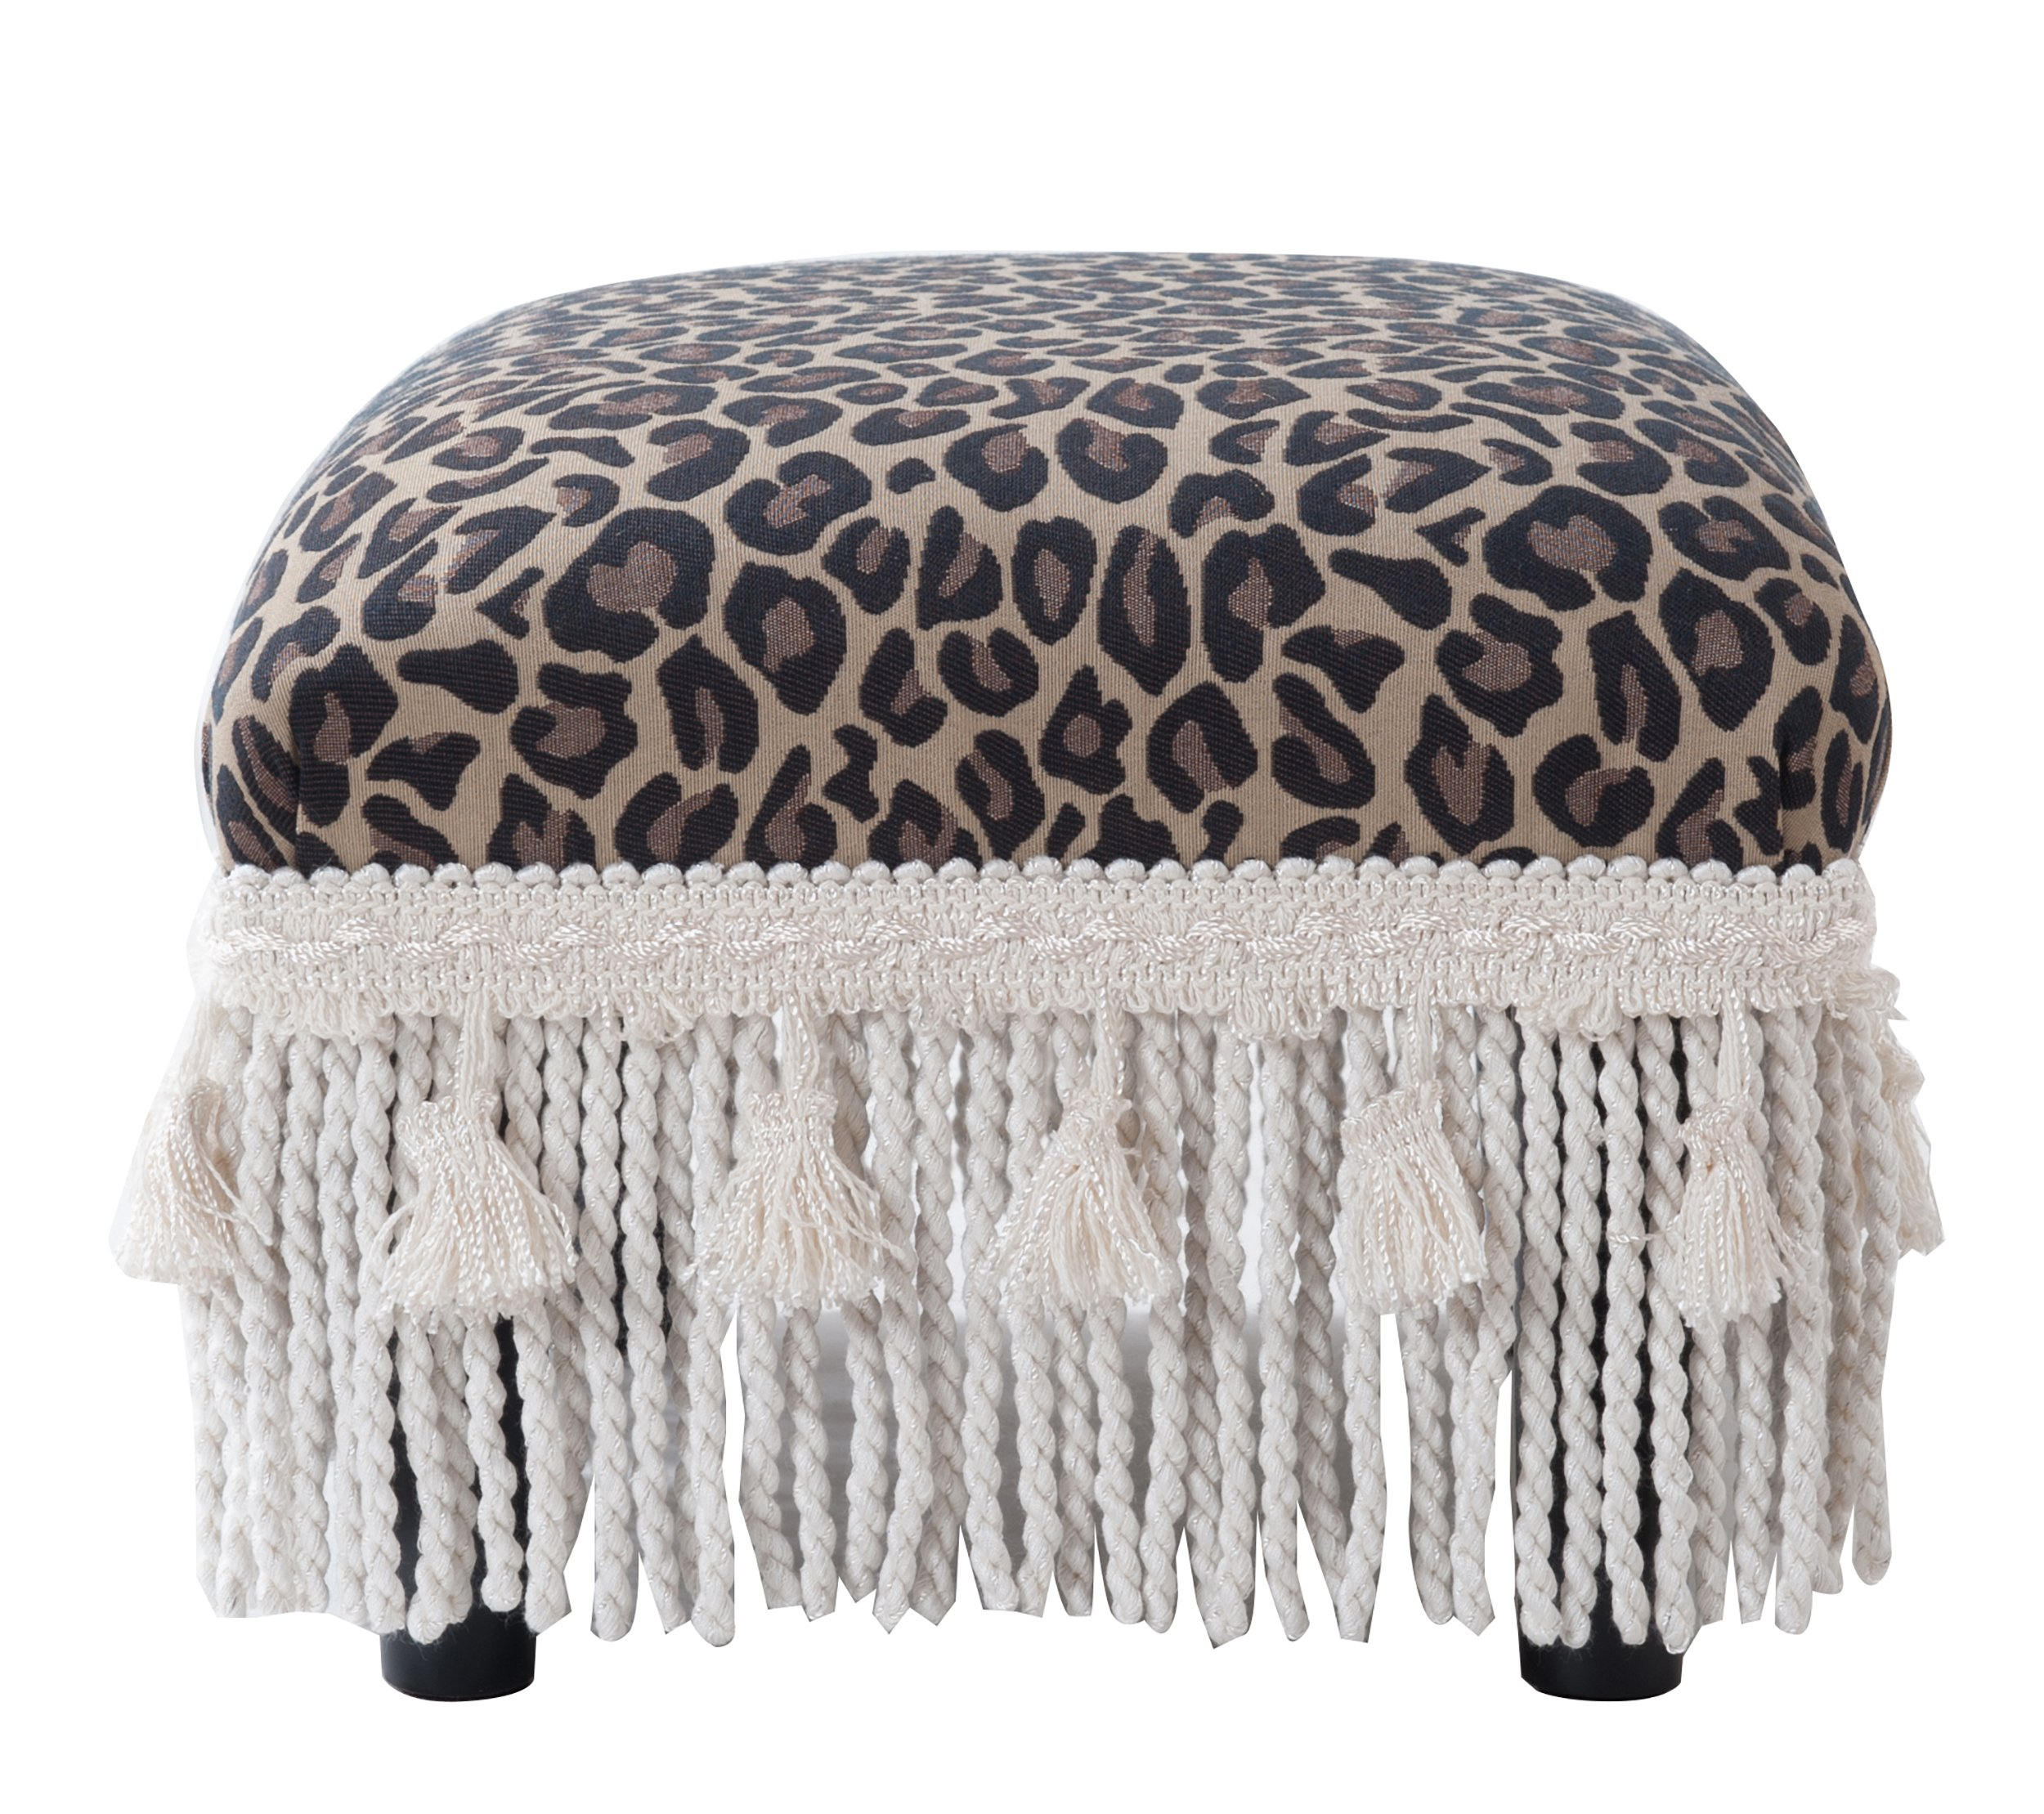 Jennifer Taylor Home 2318-655 Decorative Fiona Collection Traditional Upholstered Rayon Blend Footstool with Fringe and Trim Tassels, Multi-Colored, Brown/Beige by Jennifer Taylor Home (Image #4)